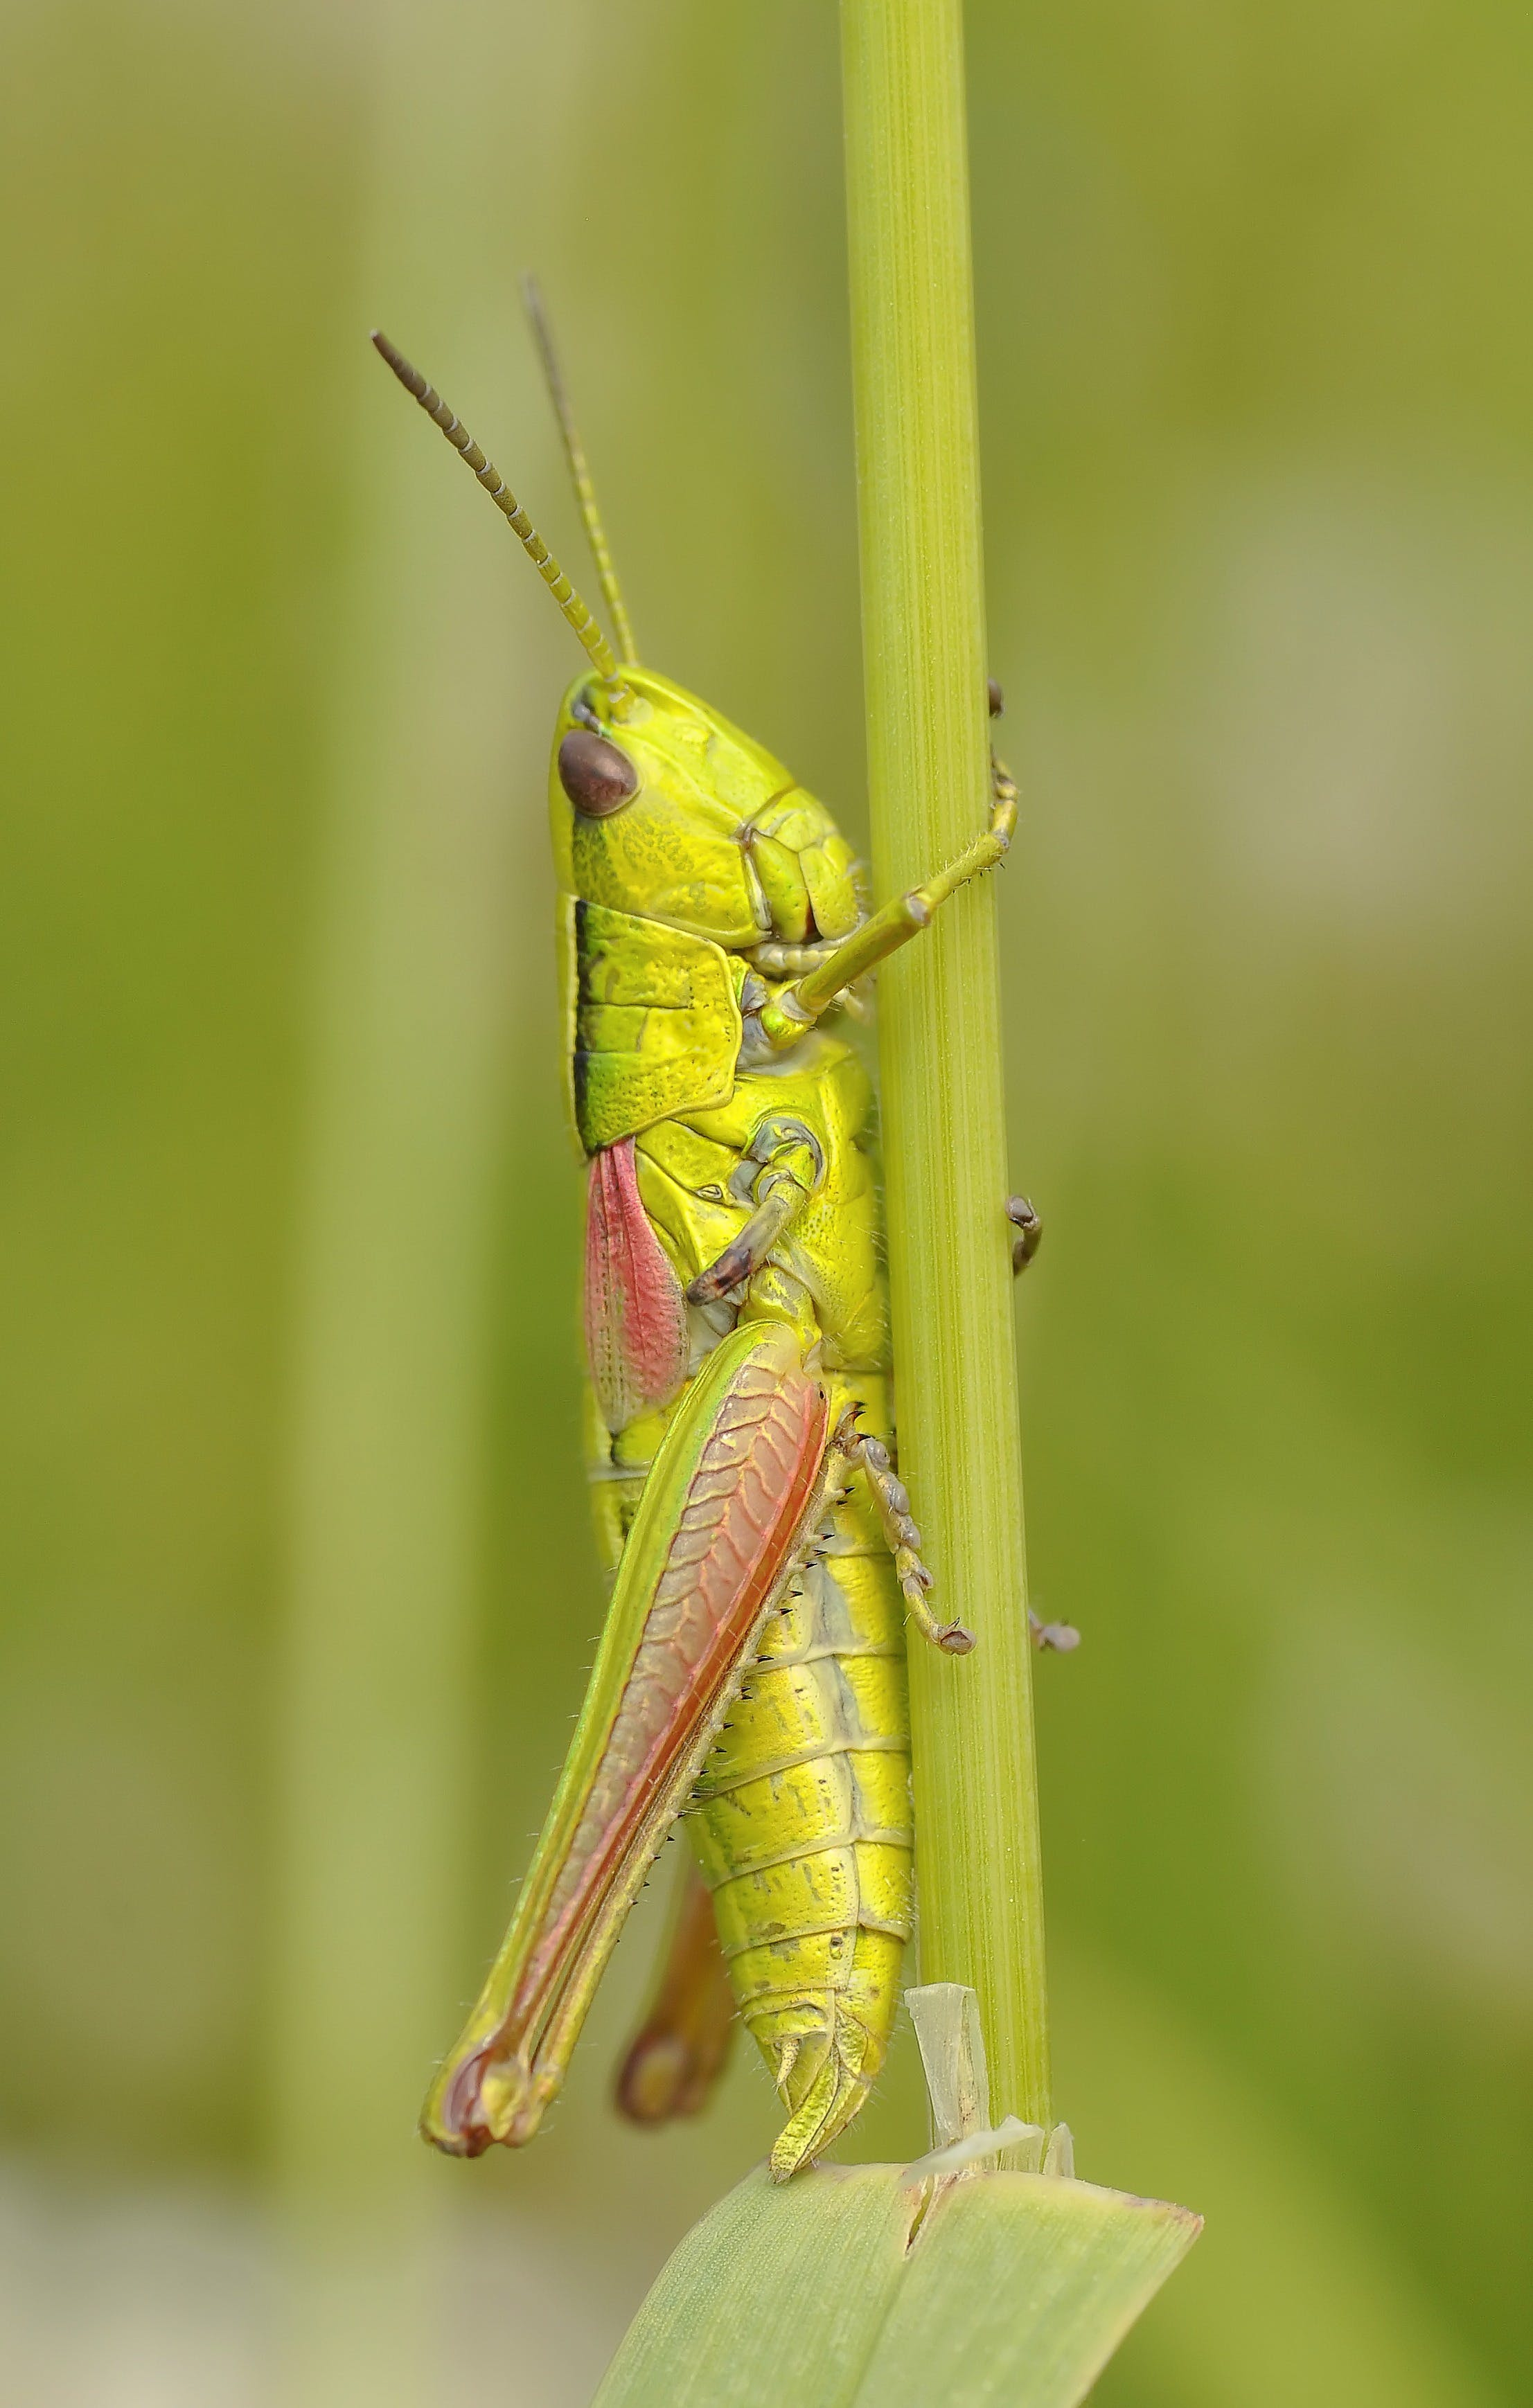 Gratis stockfoto met close-up, groen, insect, macro